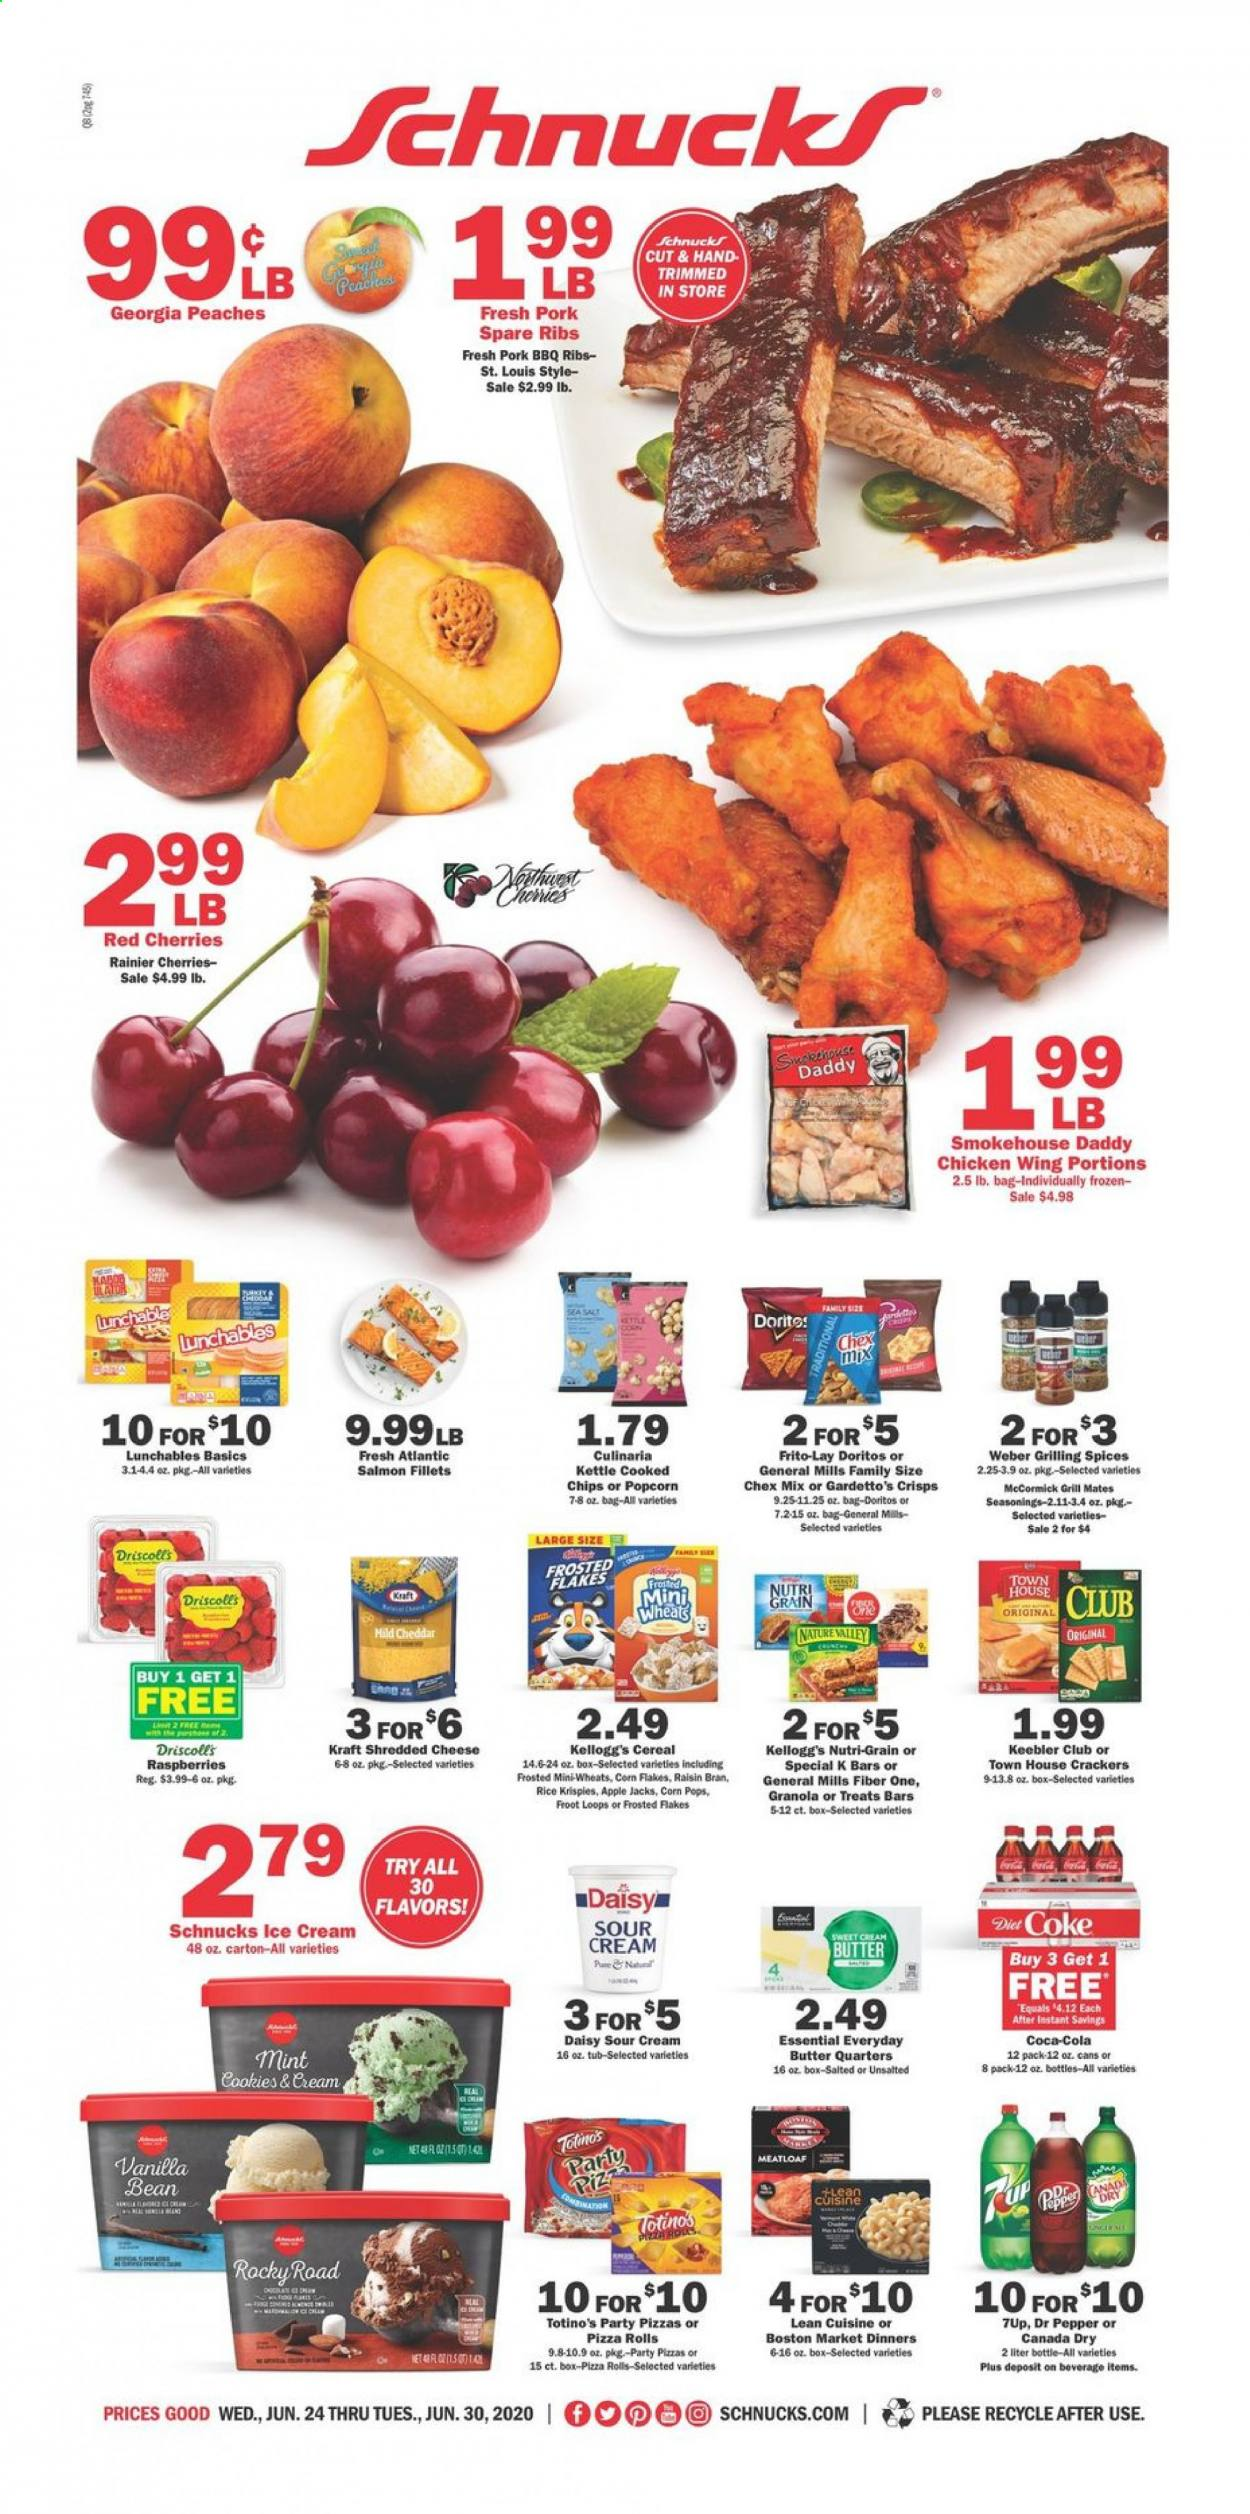 Schnucks Flyer - 06.24.2020 - 06.30.2020 - Sales products - raspberries, pizza rolls, rolls, salmon, salmon fillet, pizza, meatloaf, Lean Cuisine, Lunchables, Kraft®, shredded cheese, cheddar, butter, sour cream, ice cream, cookies, crackers, Kellogg's, Keebler, Doritos, popcorn, Frito-Lay, Chex Mix, cereals, granola, corn flakes, Rice Krispies, Frosted Flakes, Corn Pops, Raisin Bran, Fiber One, Nutri-Grain, Canada Dry, Coca-Cola, Dr. Pepper, 7UP, turkey, chicken, pork meat, pork spare ribs. Page 1.